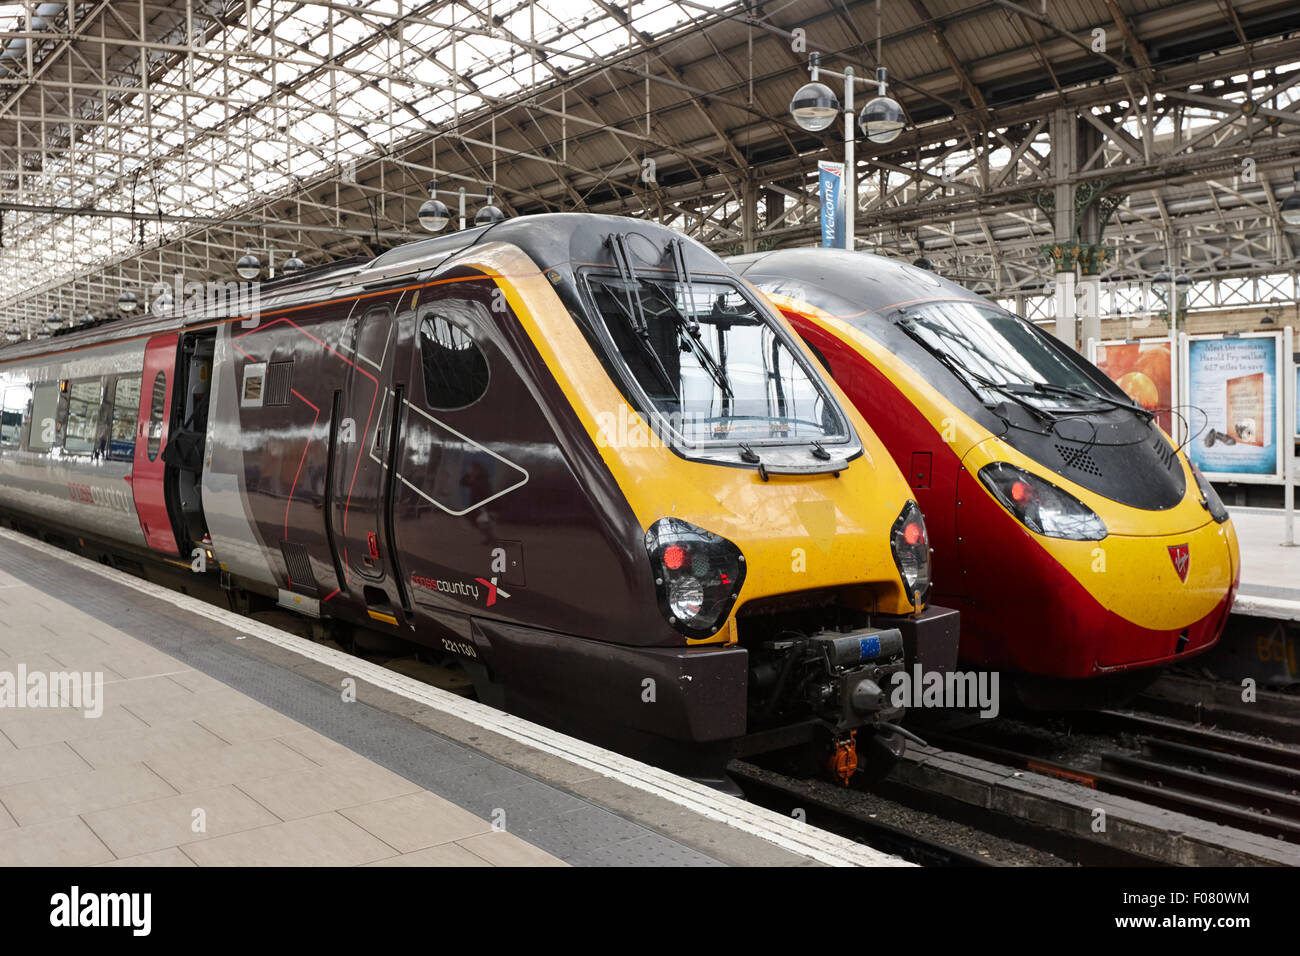 cross country and virgin trains at the platforms in Piccadilly train station Manchester UK - Stock Image